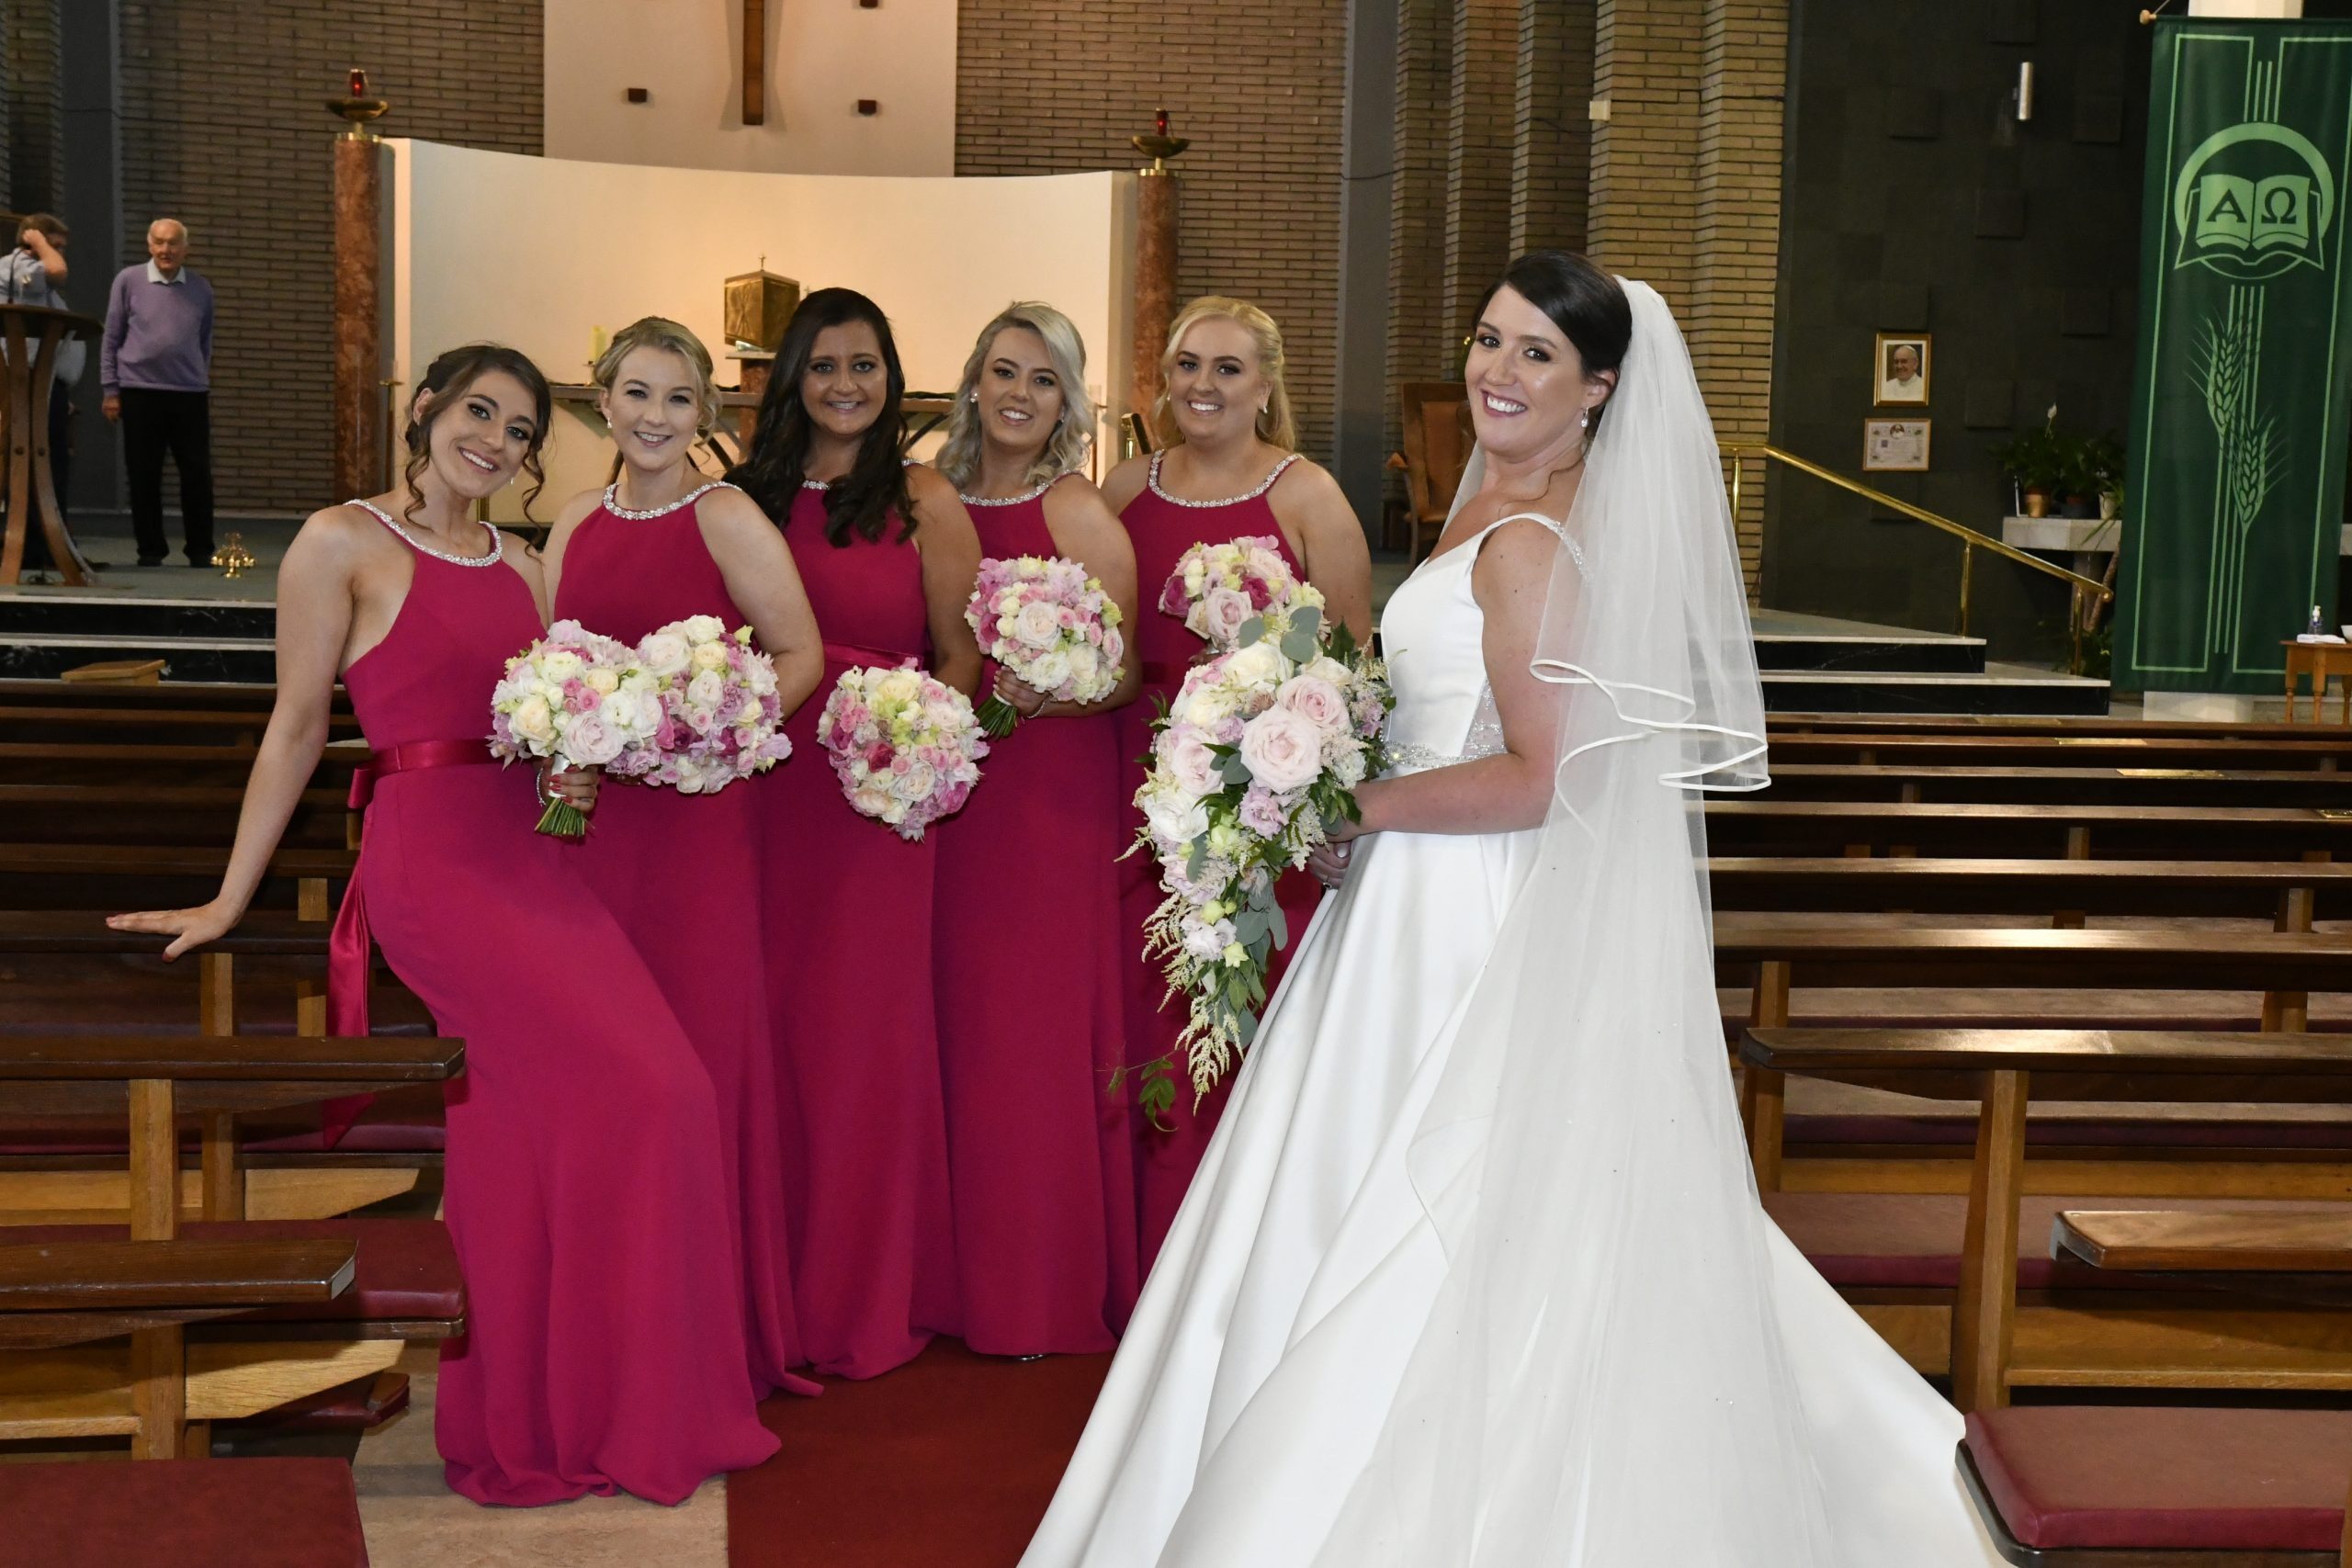 Pink and white teardrop bouquet and bridesmaids bouquets